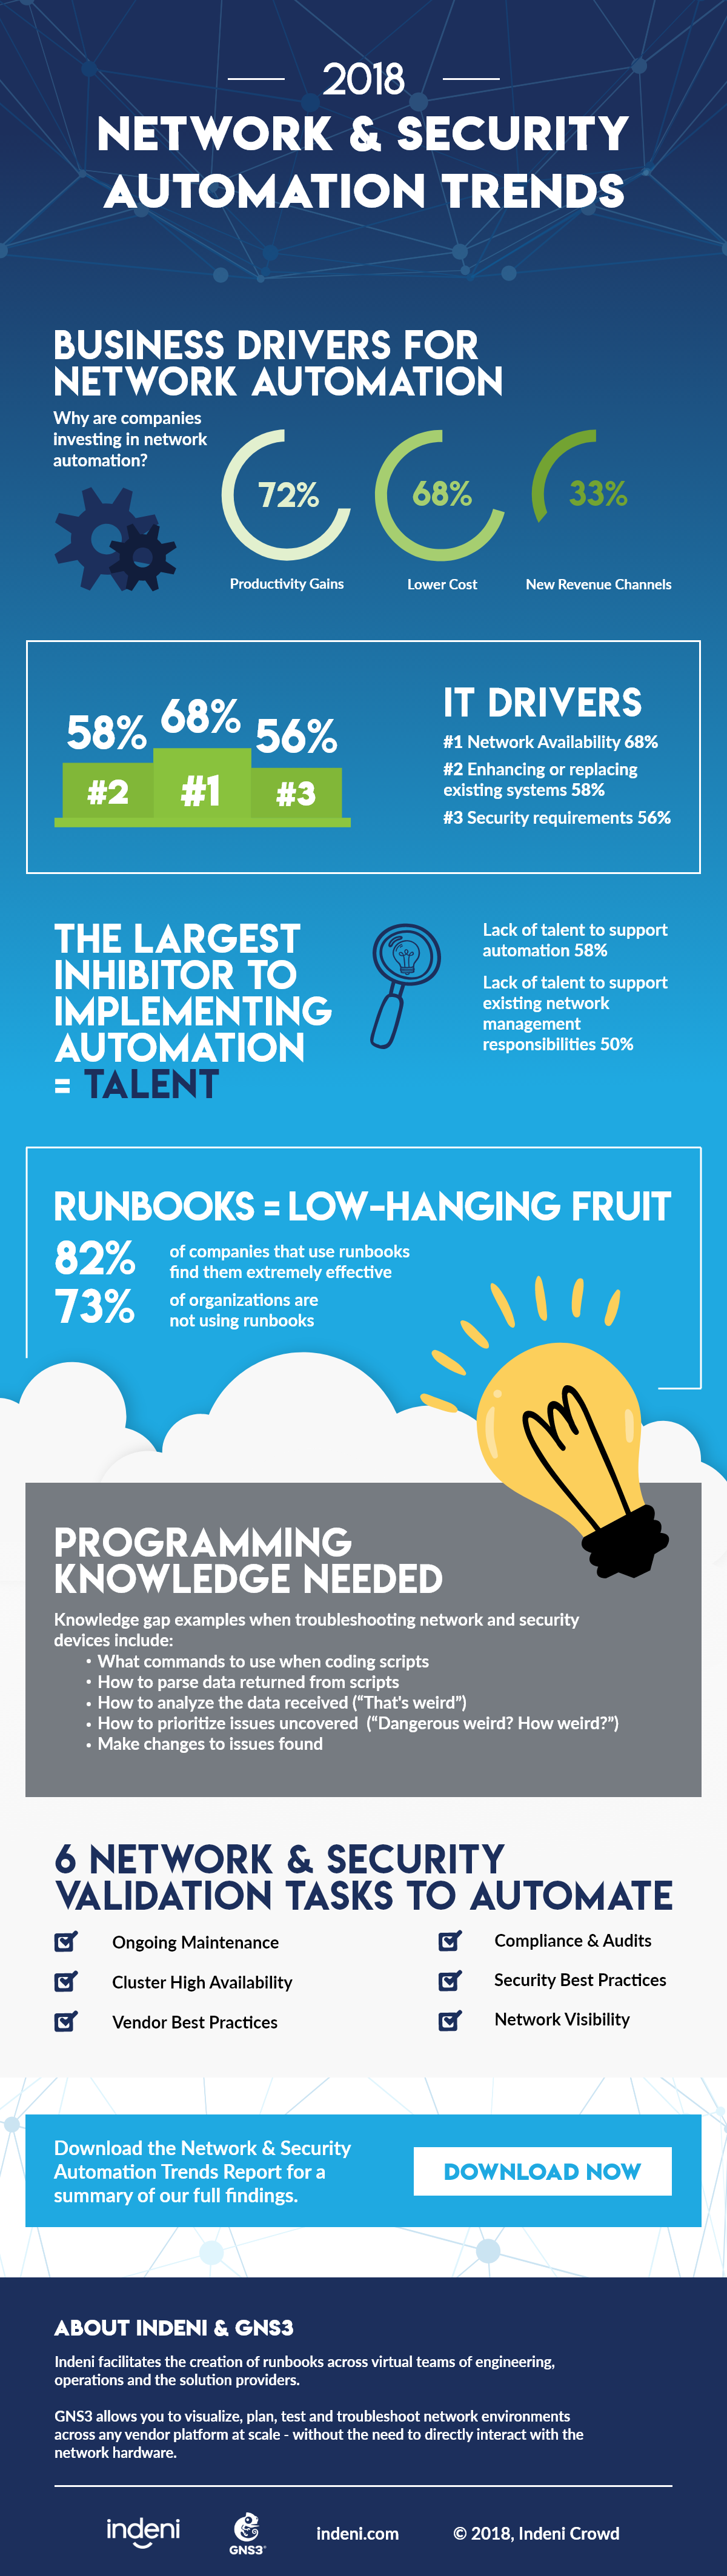 network-security-automation-trends-2018-infographic.png